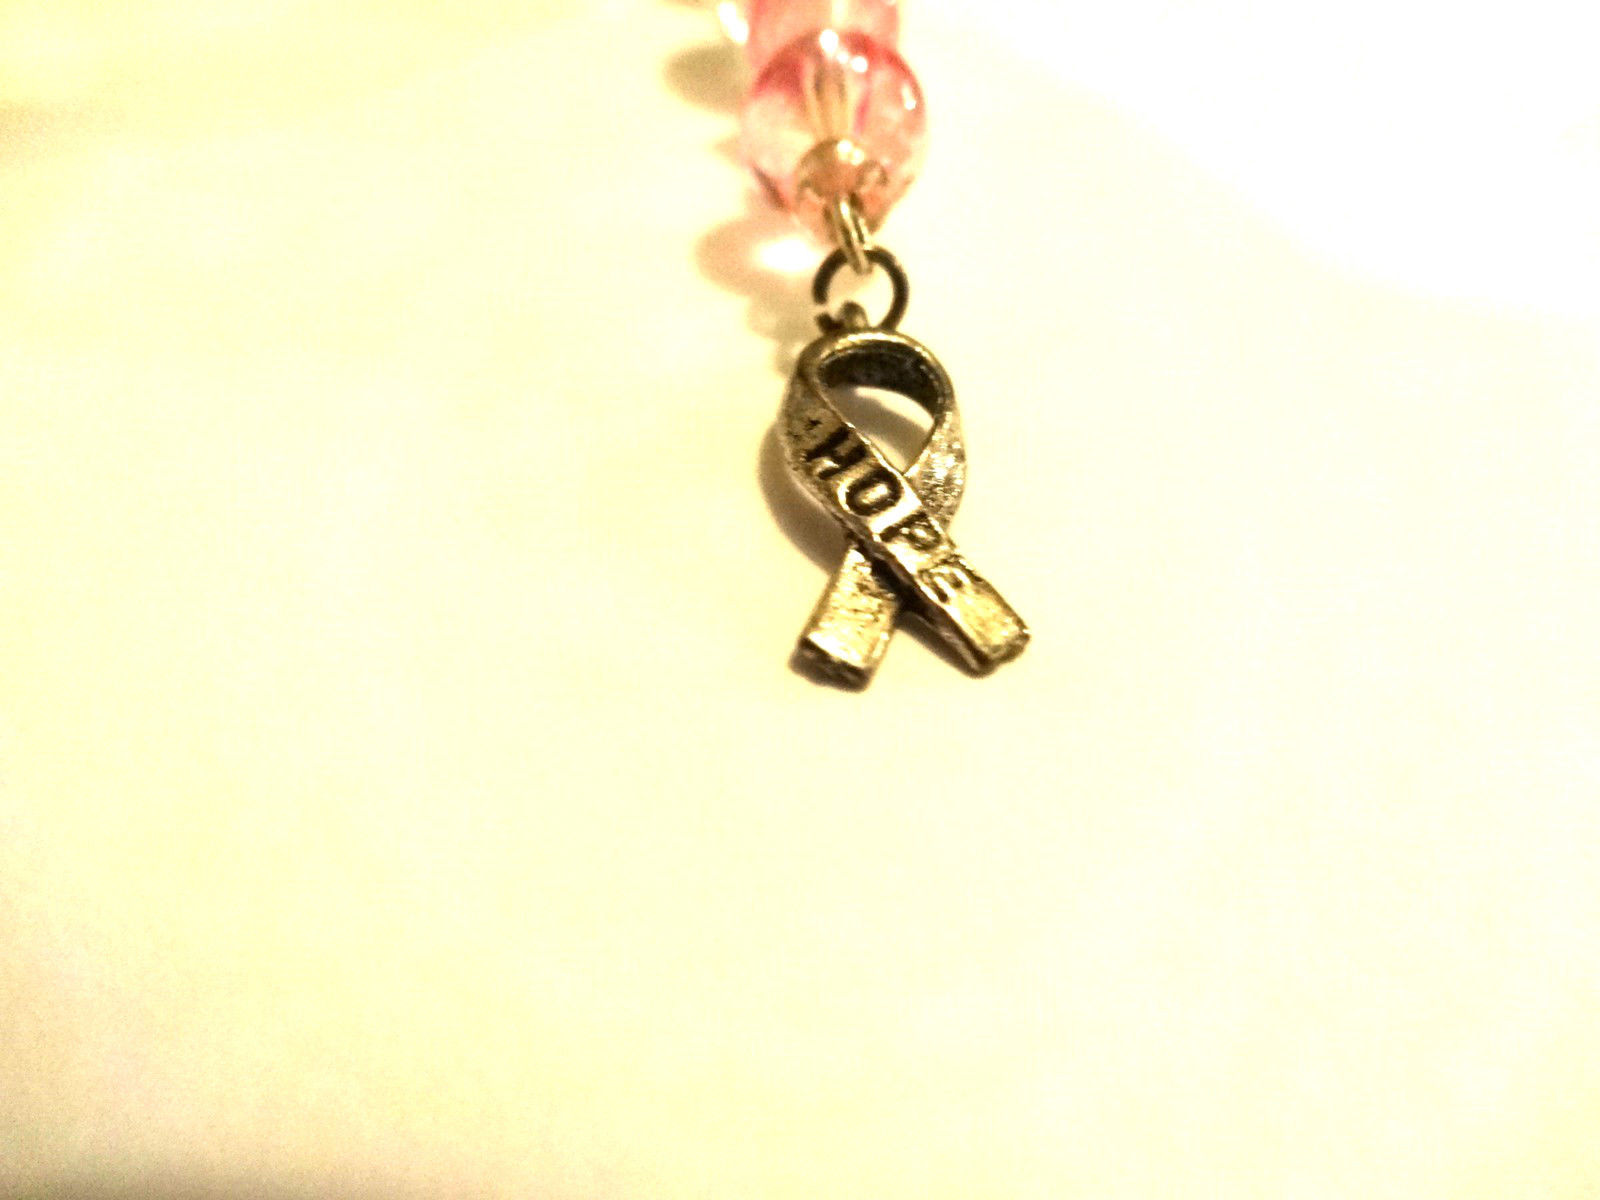 Hand Crafted Pink Breast Cancer Awareness Ornament With Silver Hope Ribbon Charm image 6